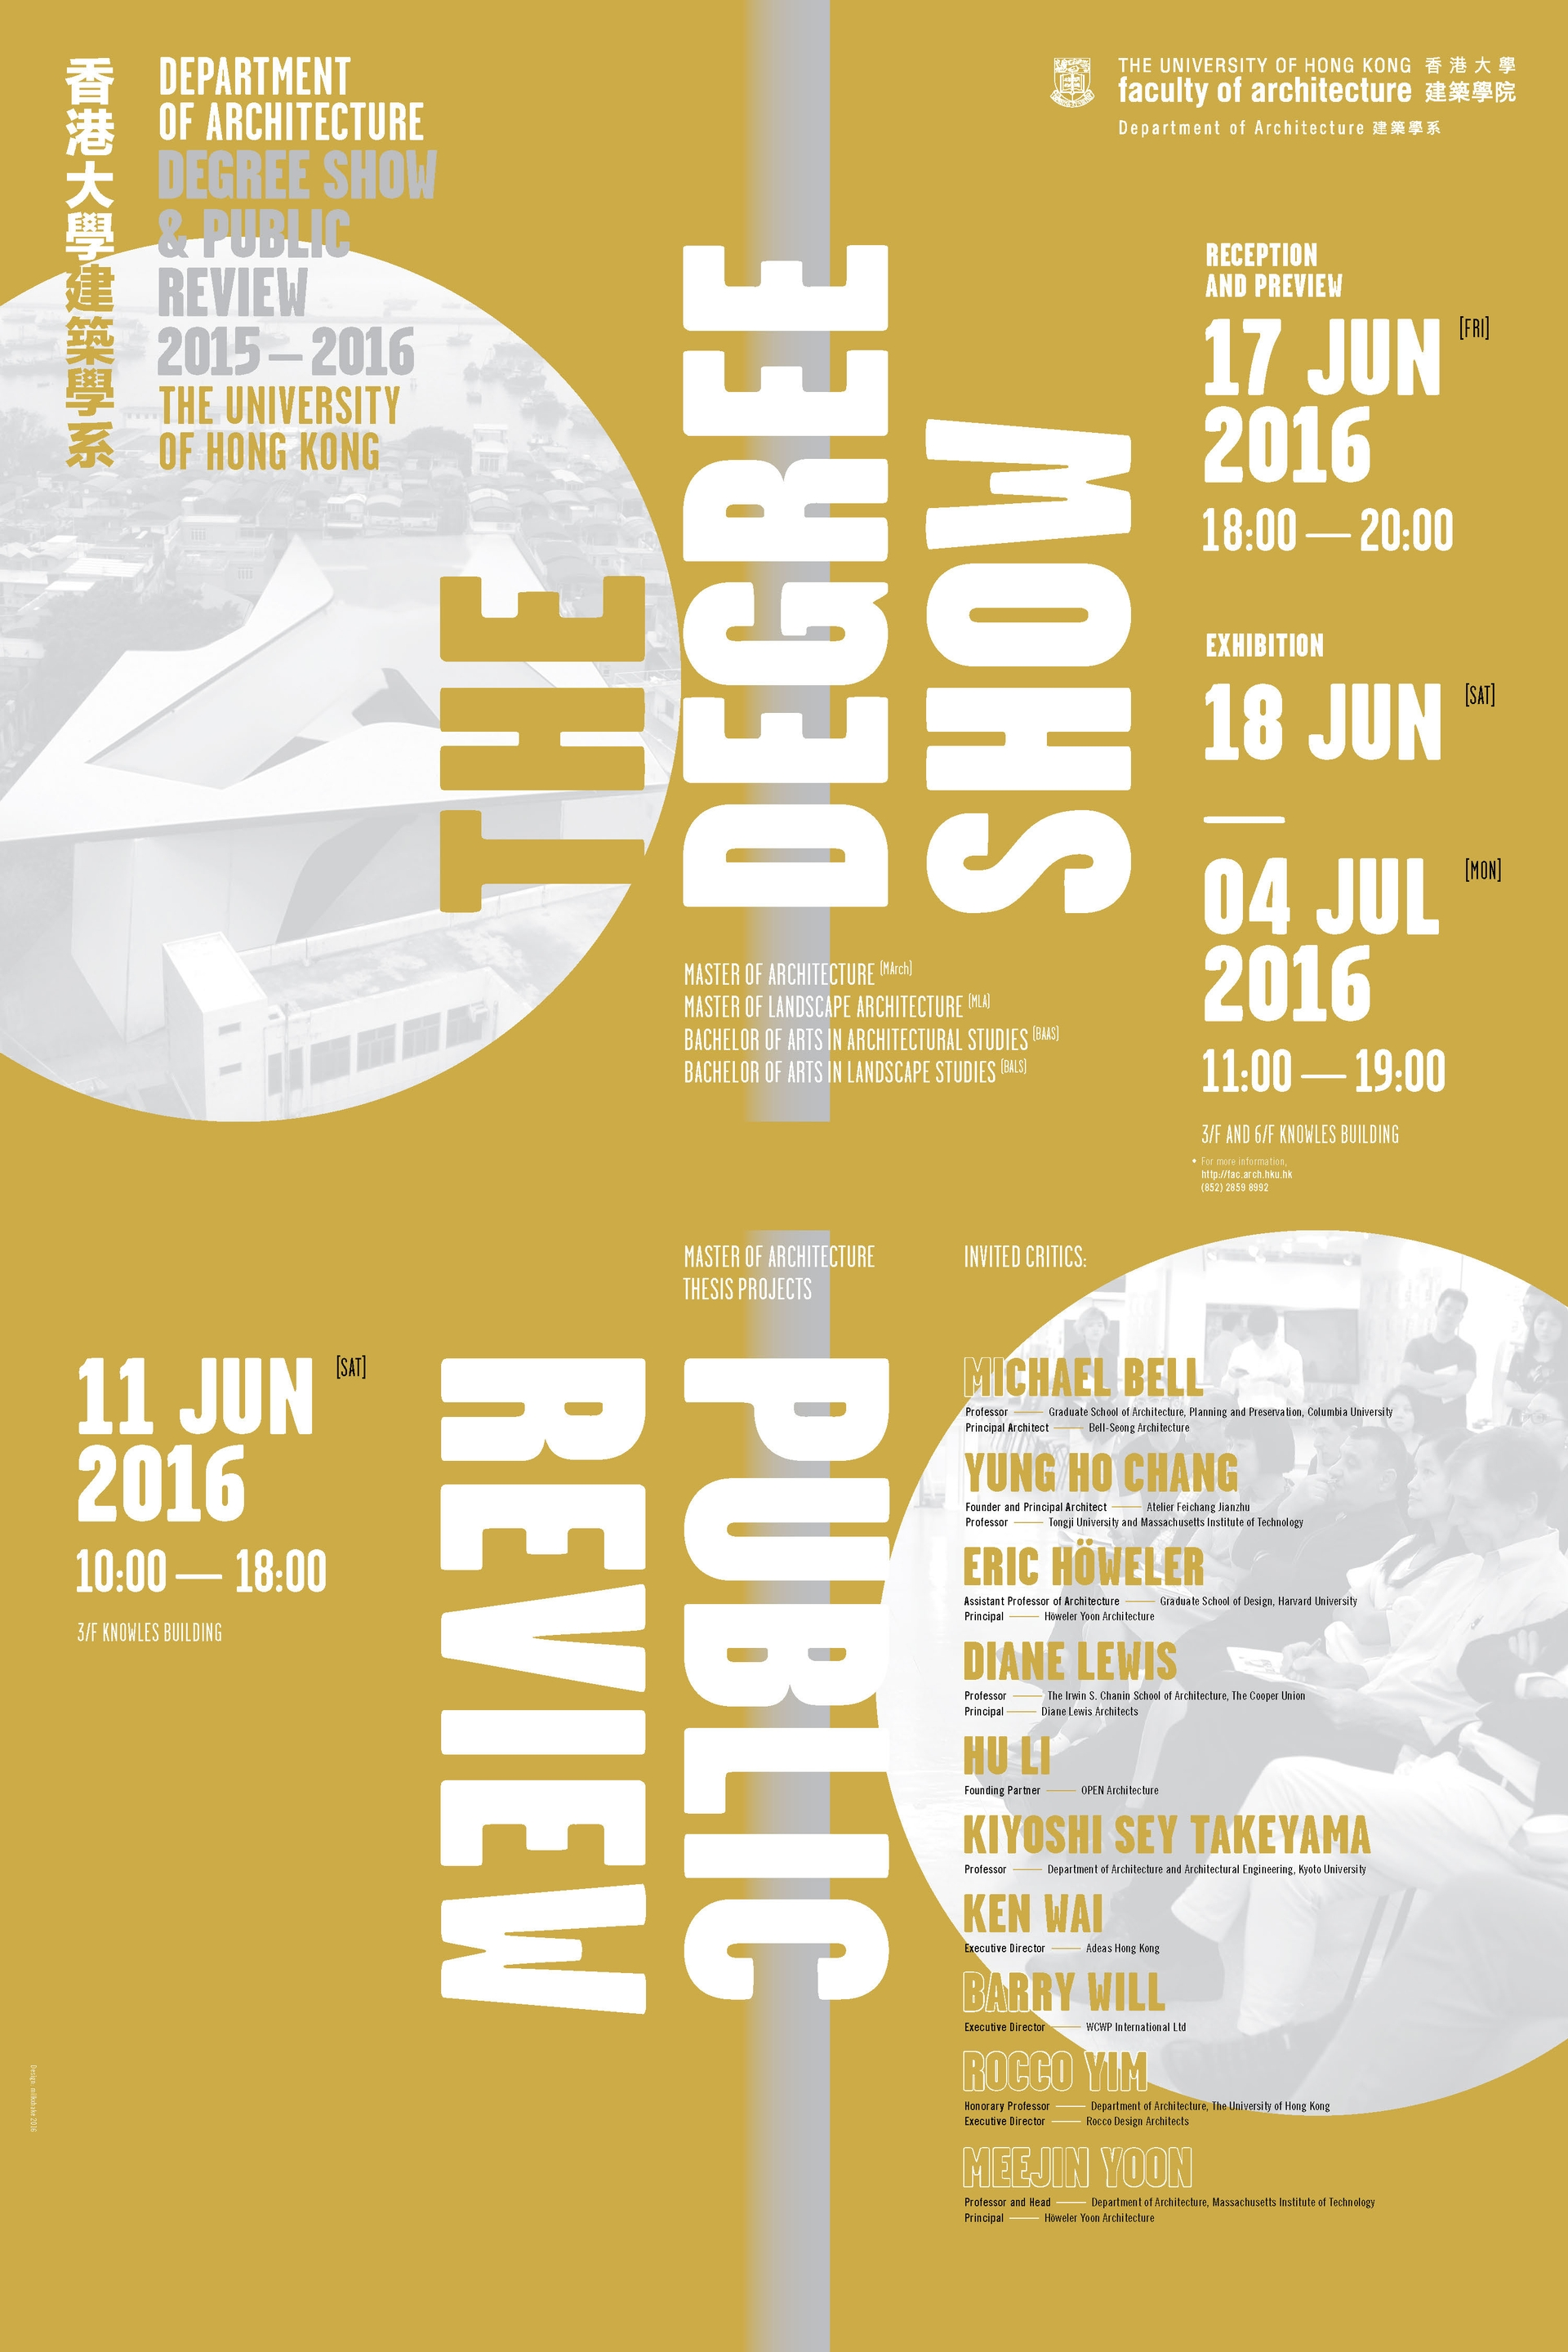 The Degree Show and Public Review 20152016